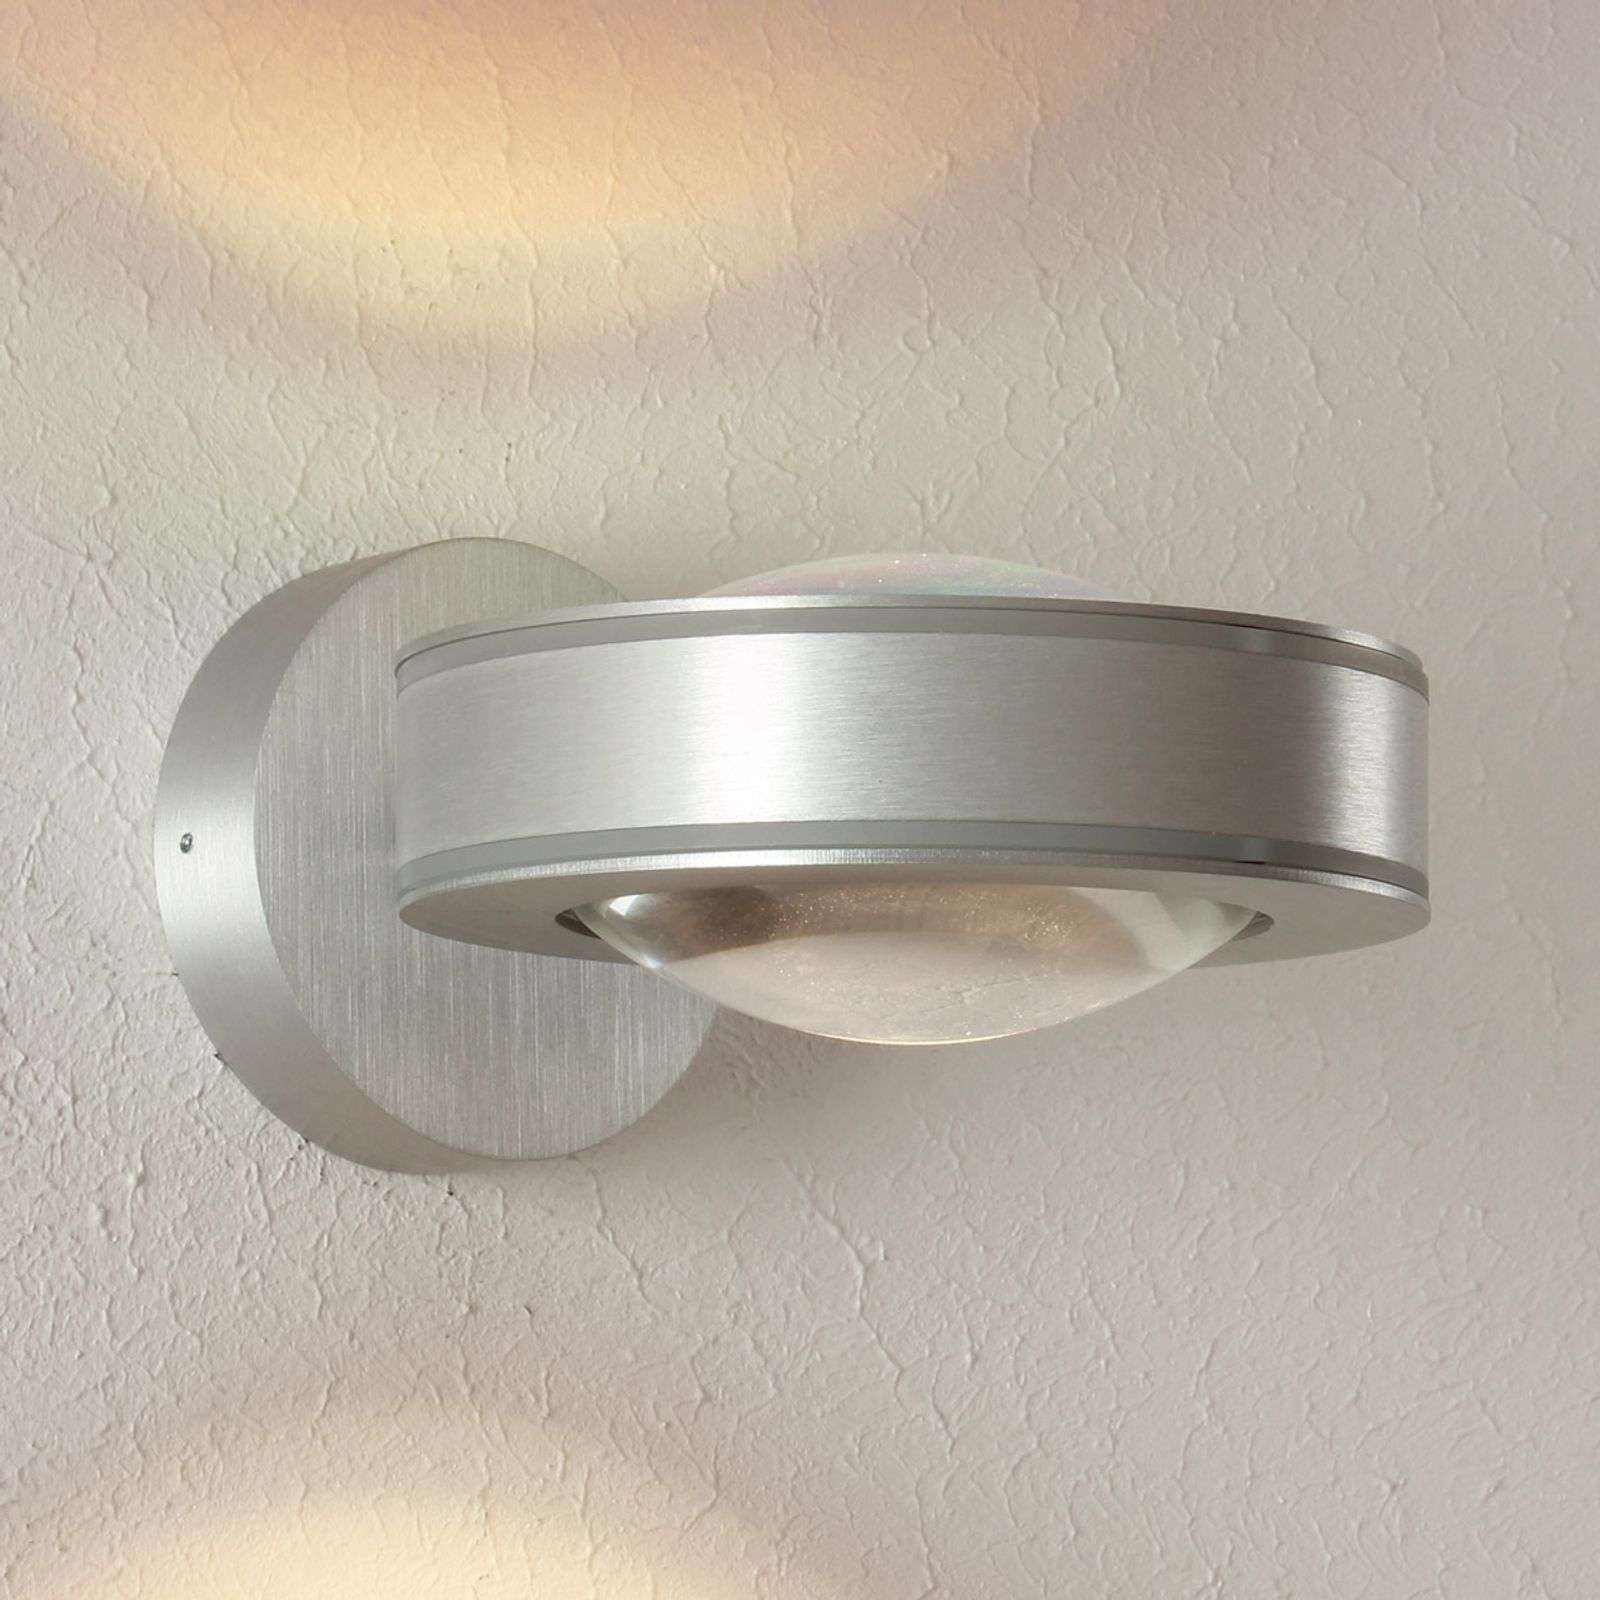 Escale Vio - foco de pared LED atenuable, aluminio